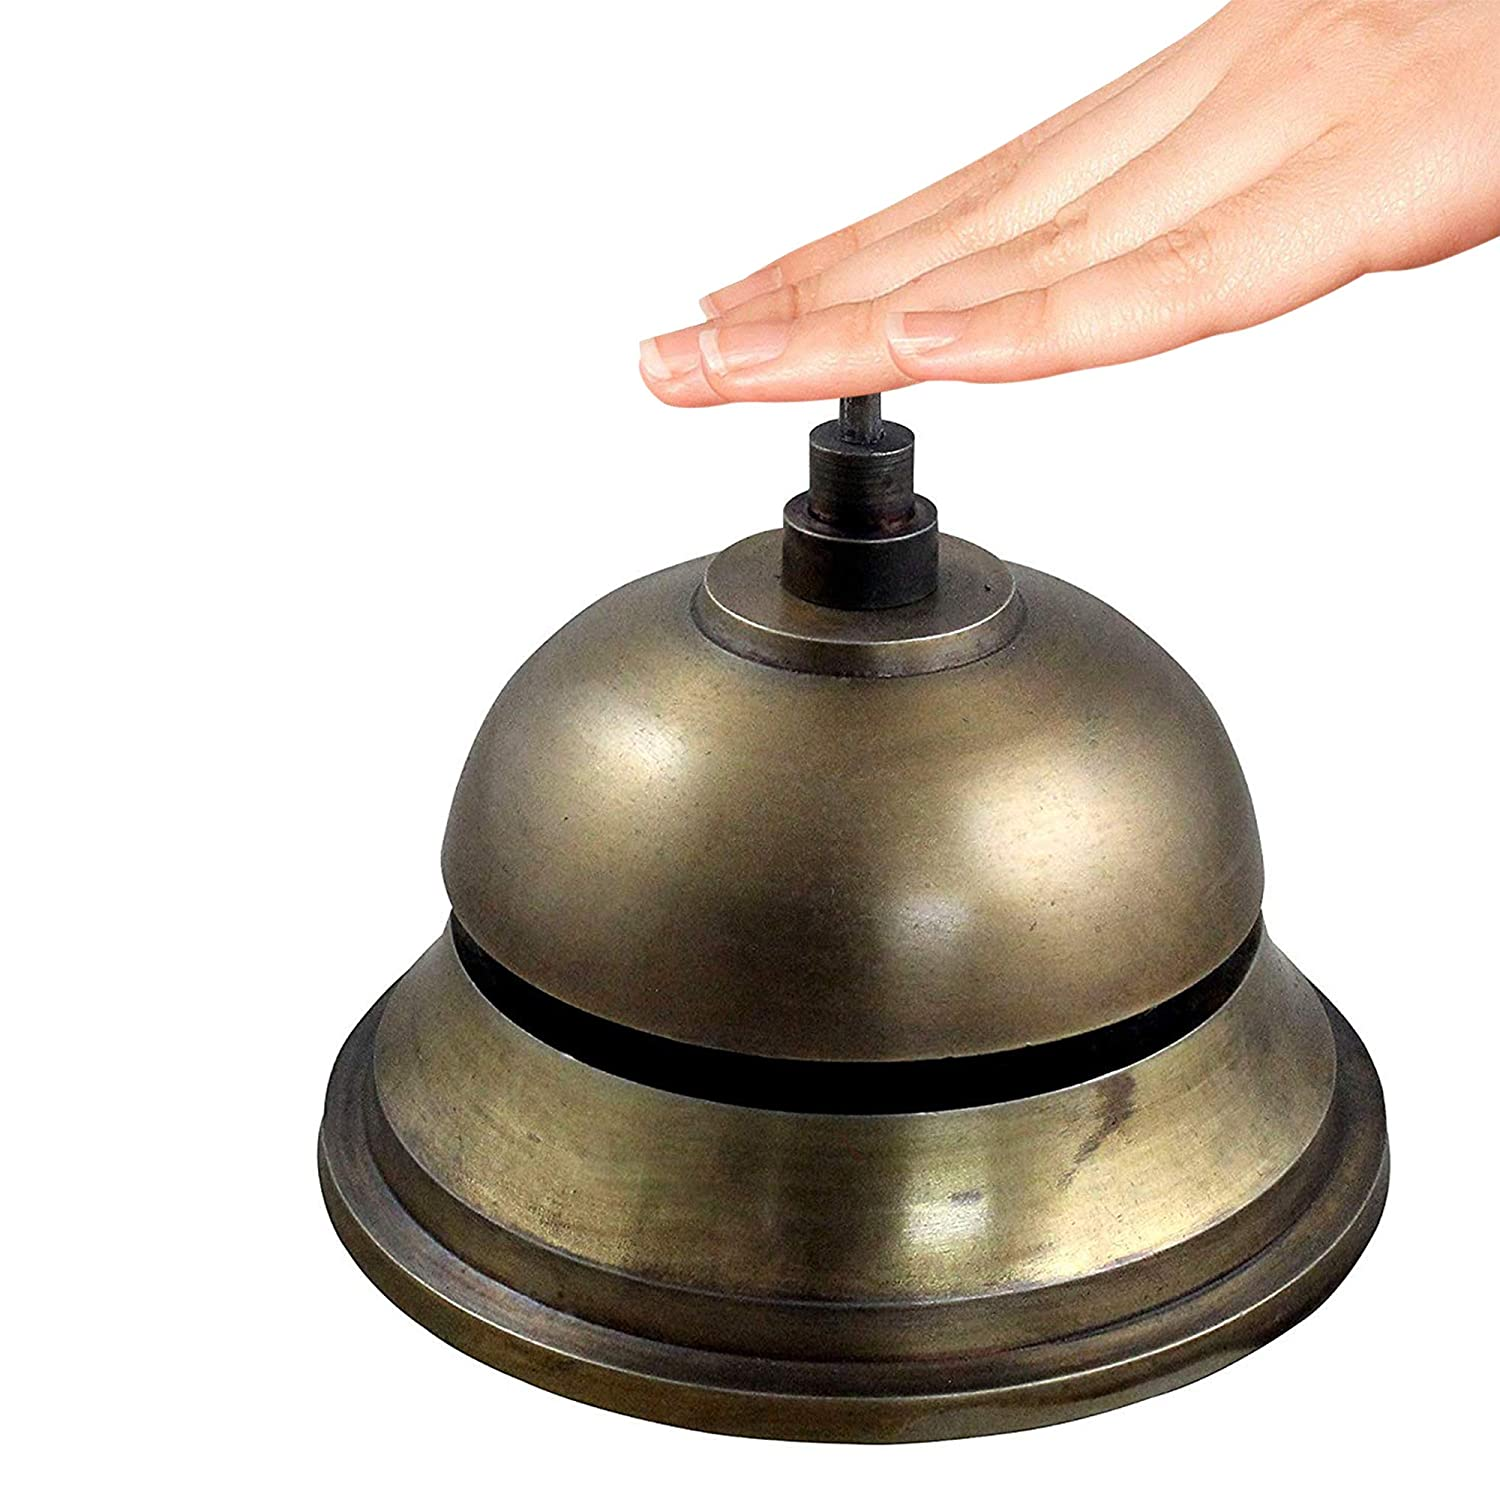 Restaurants RoyaltyRoute Office Desk Call Bell Metal Service RingBell Perfect for Hotels 5.3 Inches Length Schools Reception Areas Hospitals Warehouses